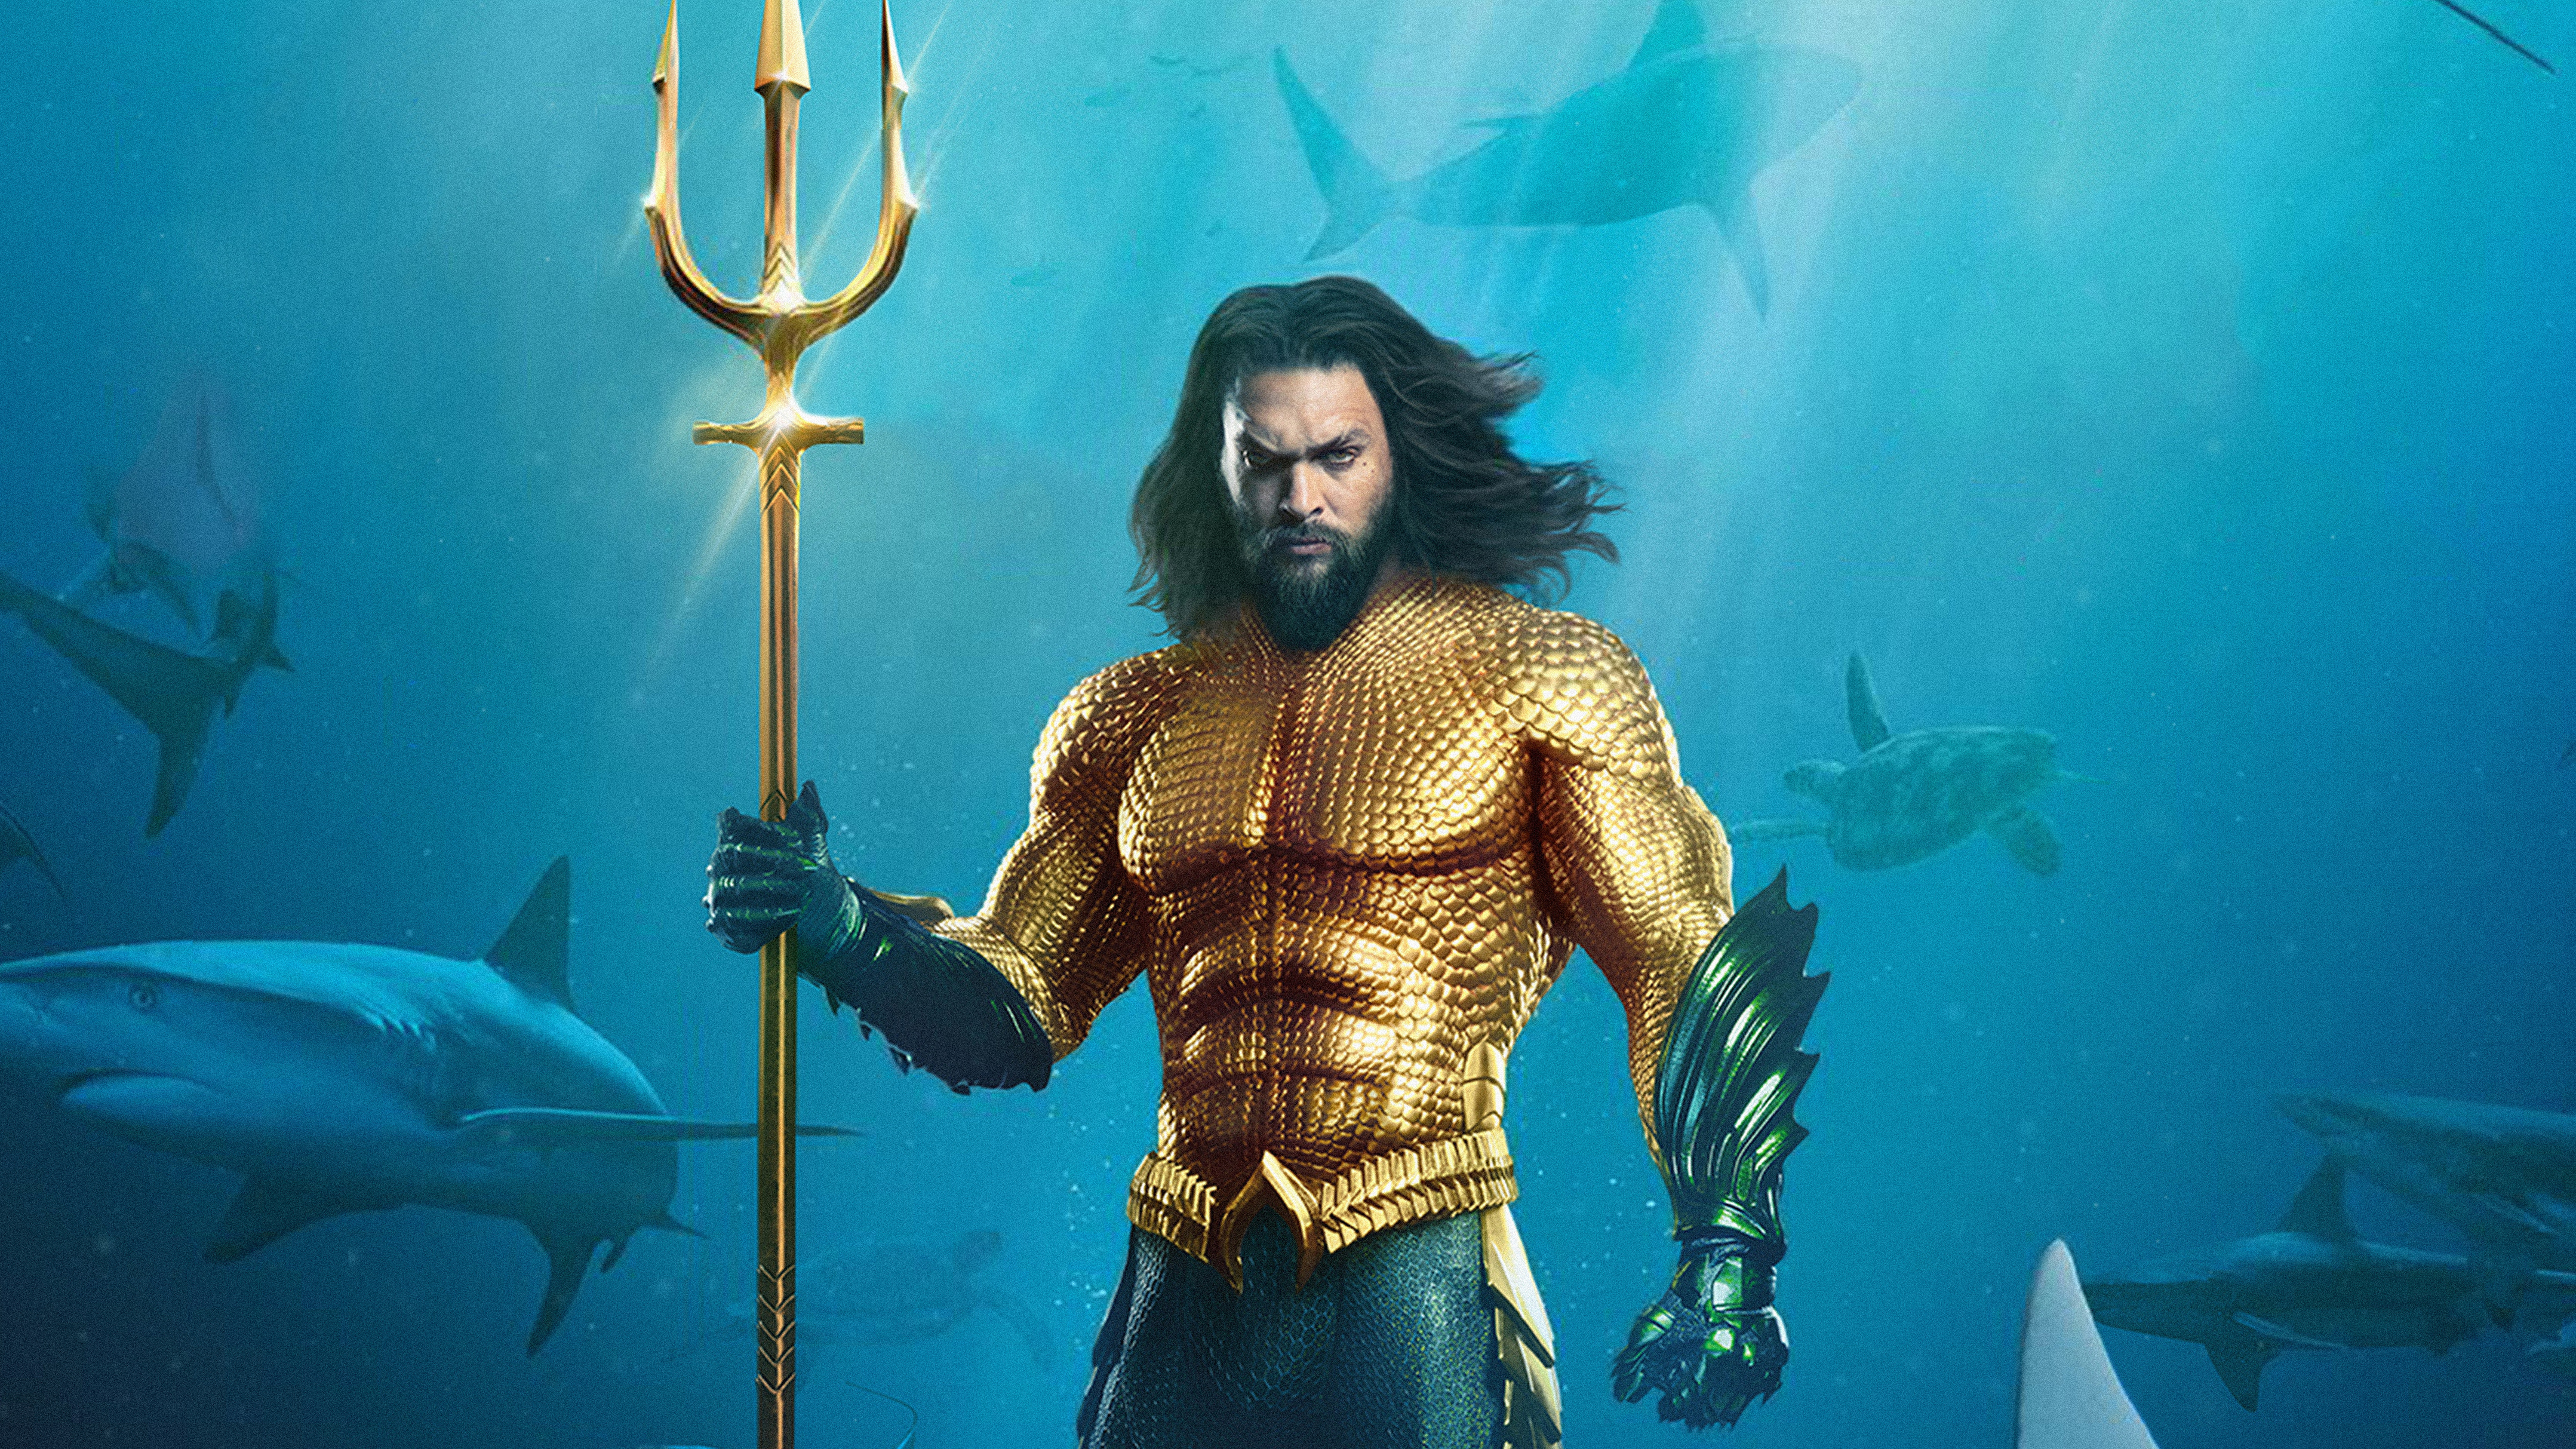 Movie Poster 2019: 3840x2160 Aquaman 5k Movie Poster 4k HD 4k Wallpapers